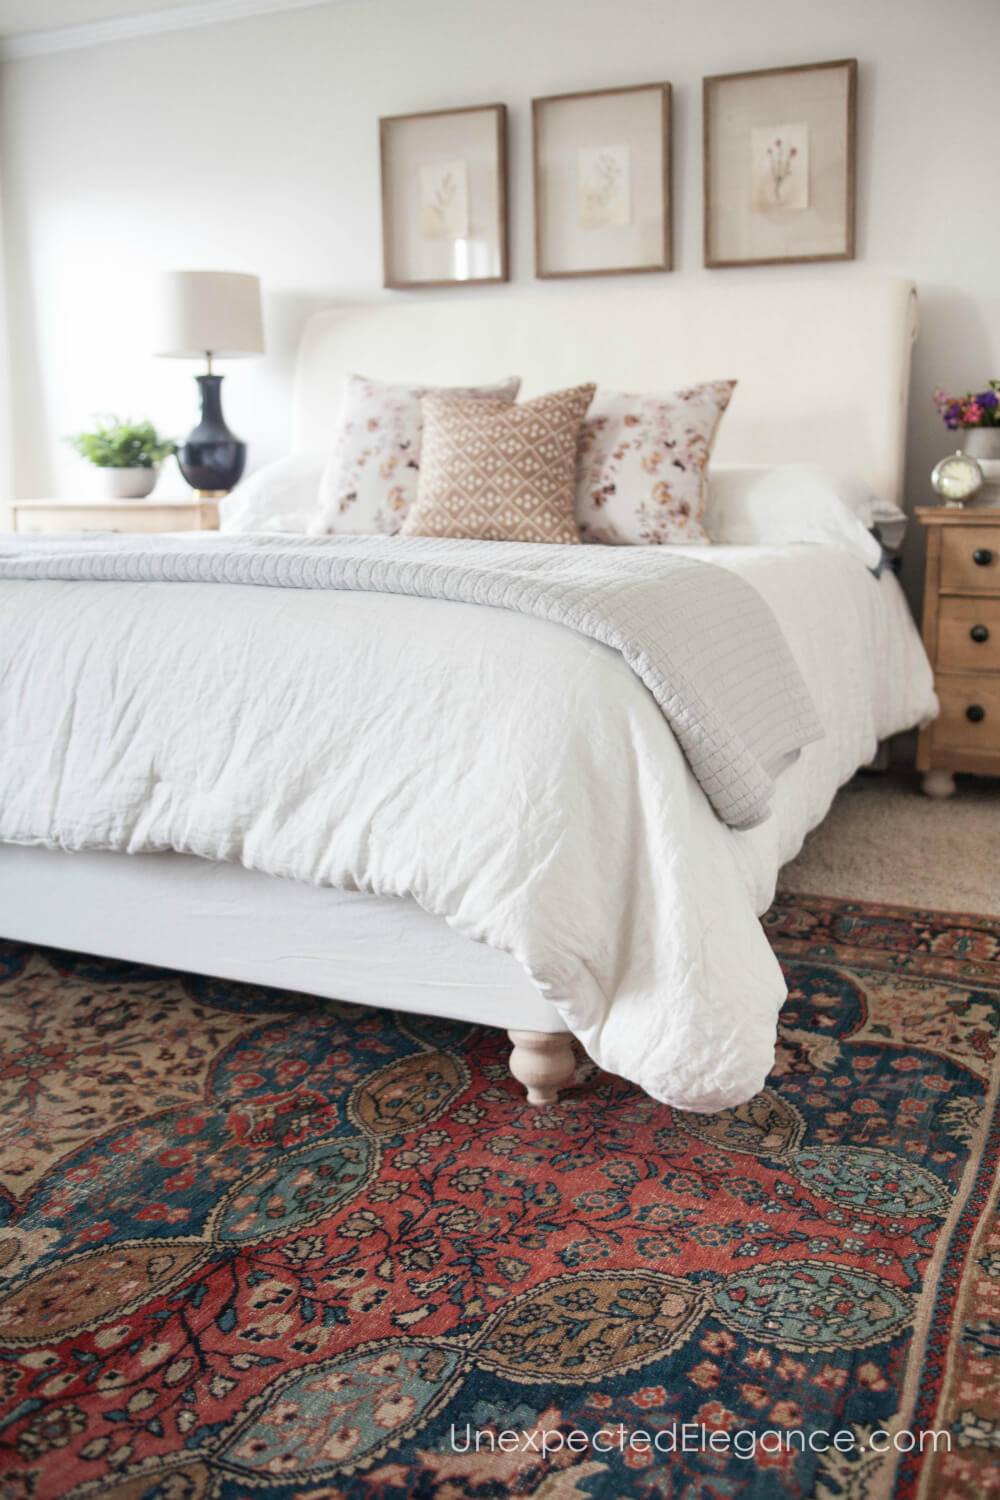 See how simple it is to get the bed you want without spending a fortune. This simple bed frame transformation is a great solution for high style on a budget!